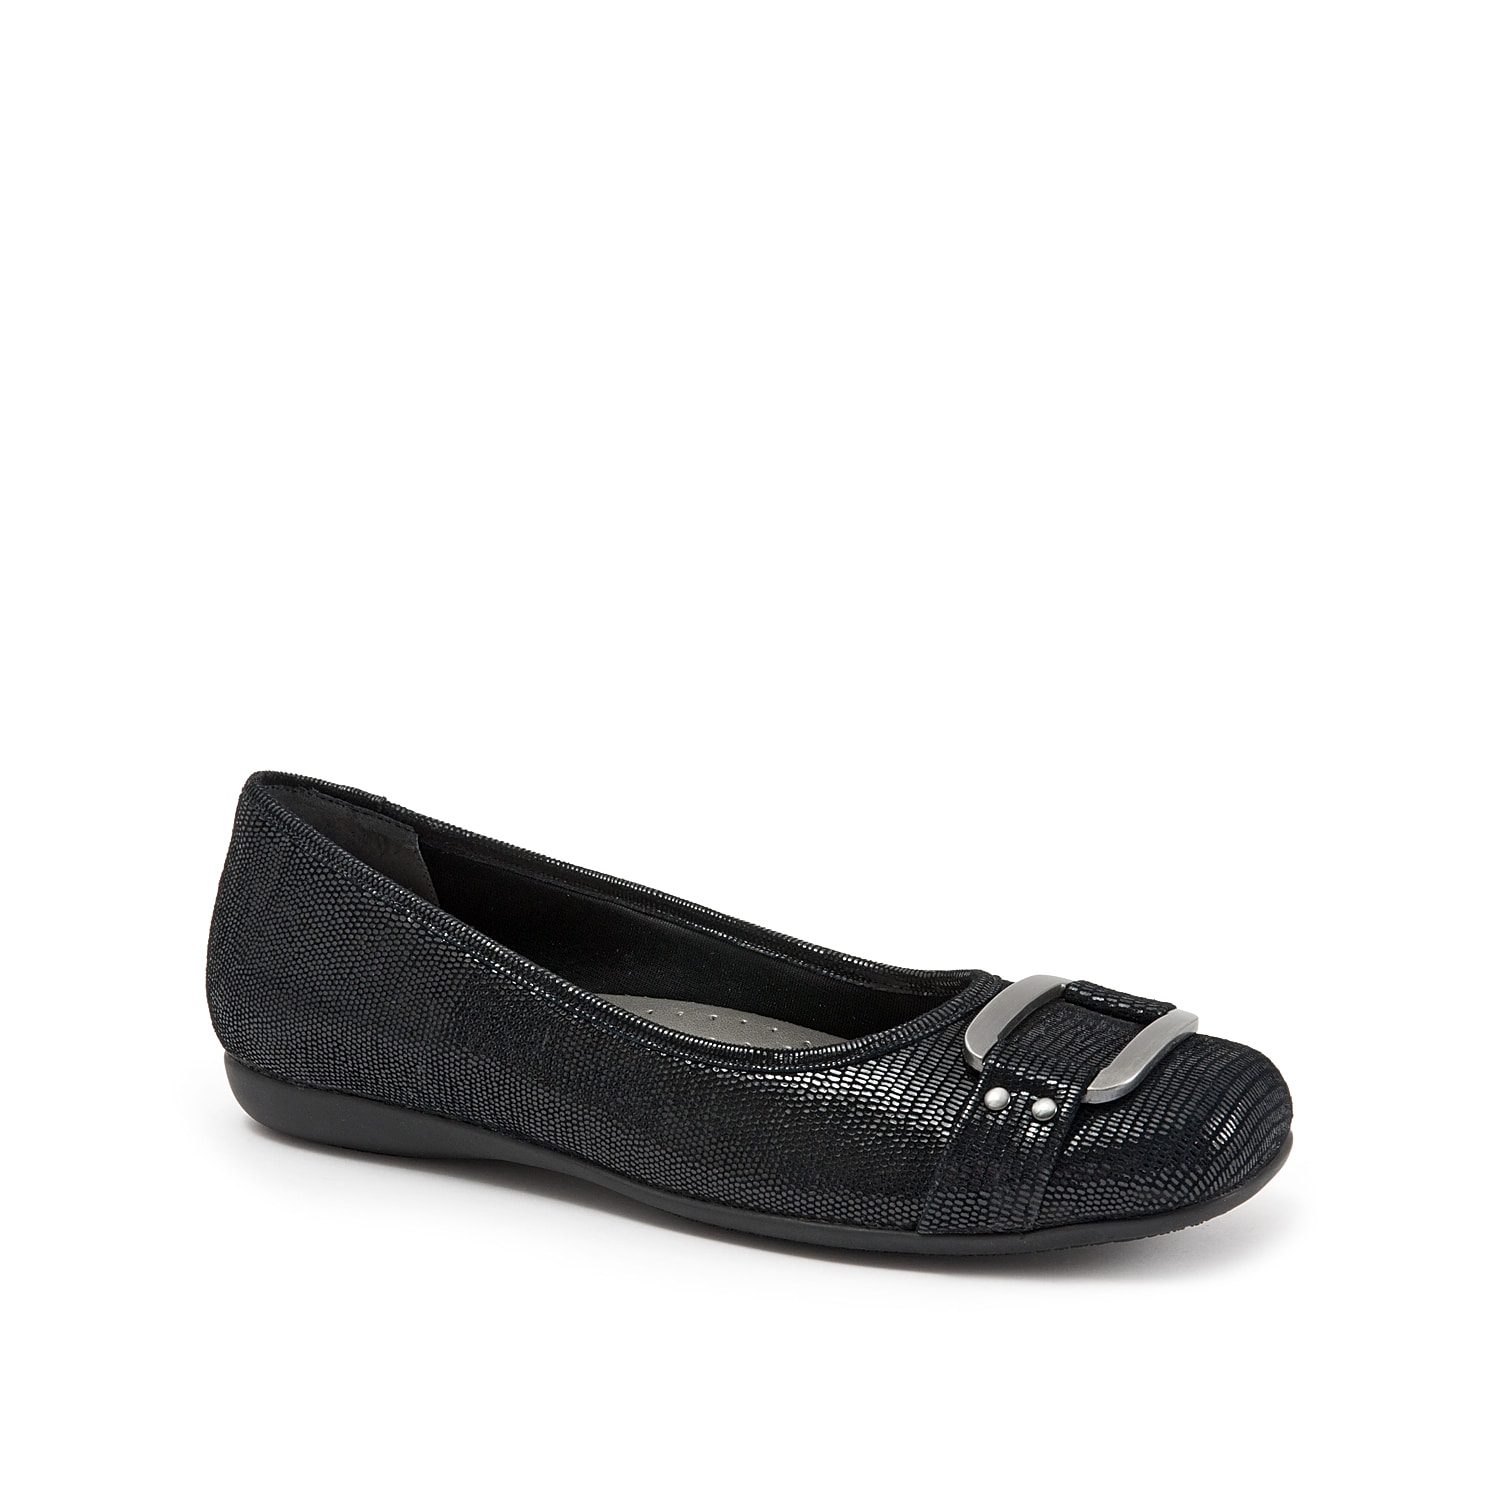 Complement your outfit with a touch of modernity by donning this Sizzle ballet flat from Trotters. Covered in an eye-catching embossed design with a classy ornament buckle on toe, this slip-on will carry impeccable charm to your strolls